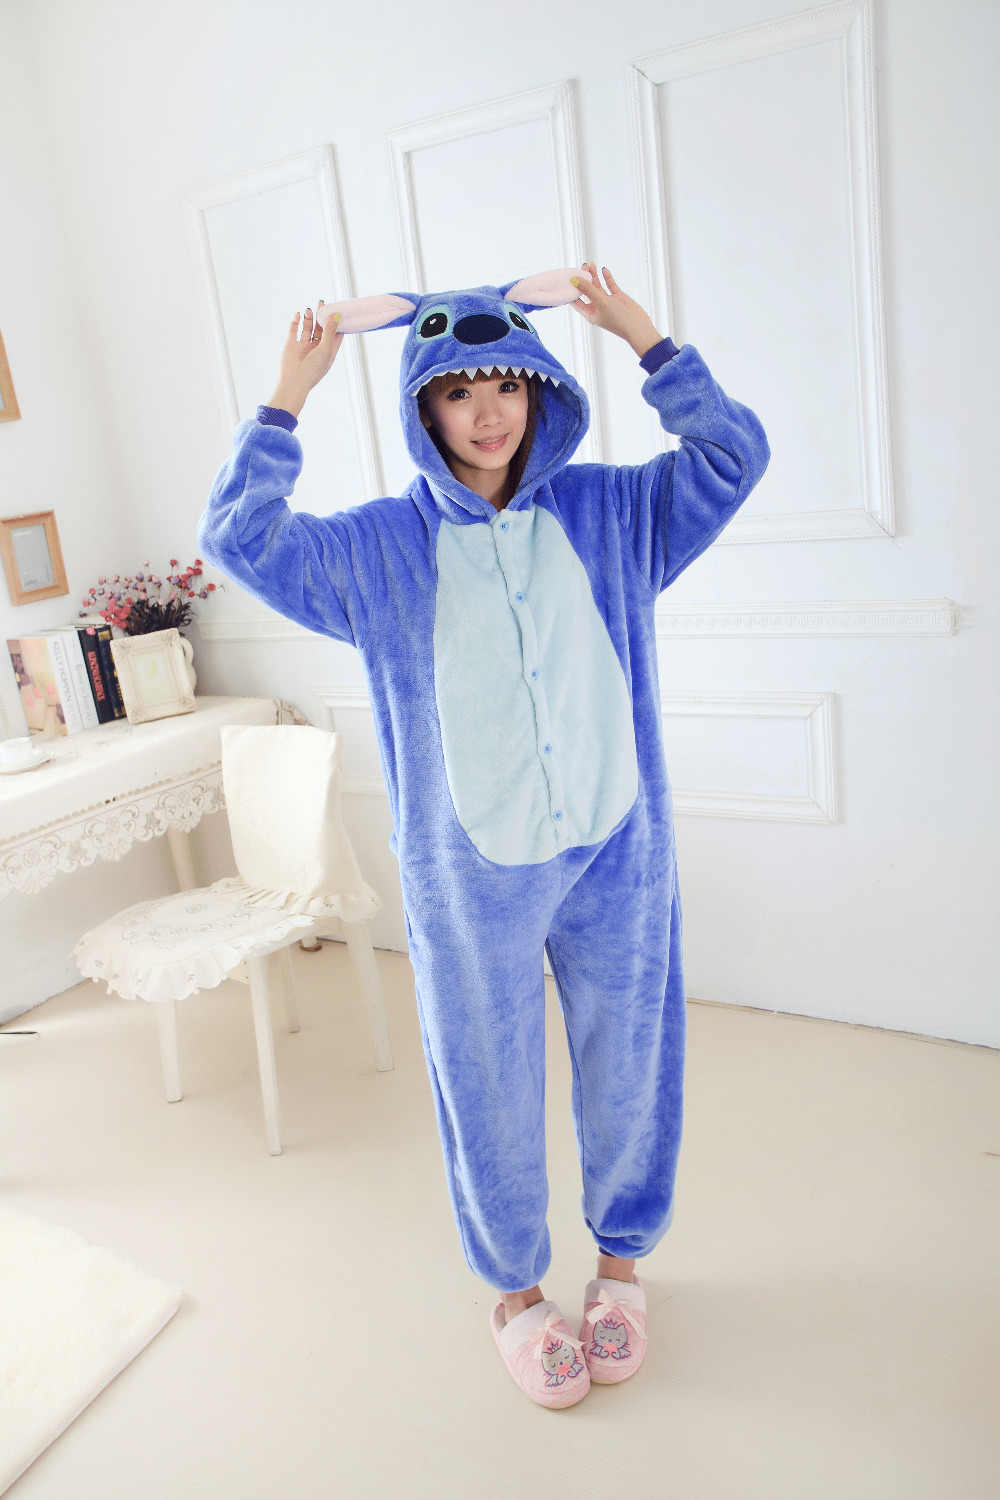 Detail Feedback Questions about Blue Pink Stitch Onesies Adult Kigurumi Onesie  Pajamas Cosplay Costume Children Sleepsuit Sleepwear Jumpsuit Party  Clothing ... 6abcc9314